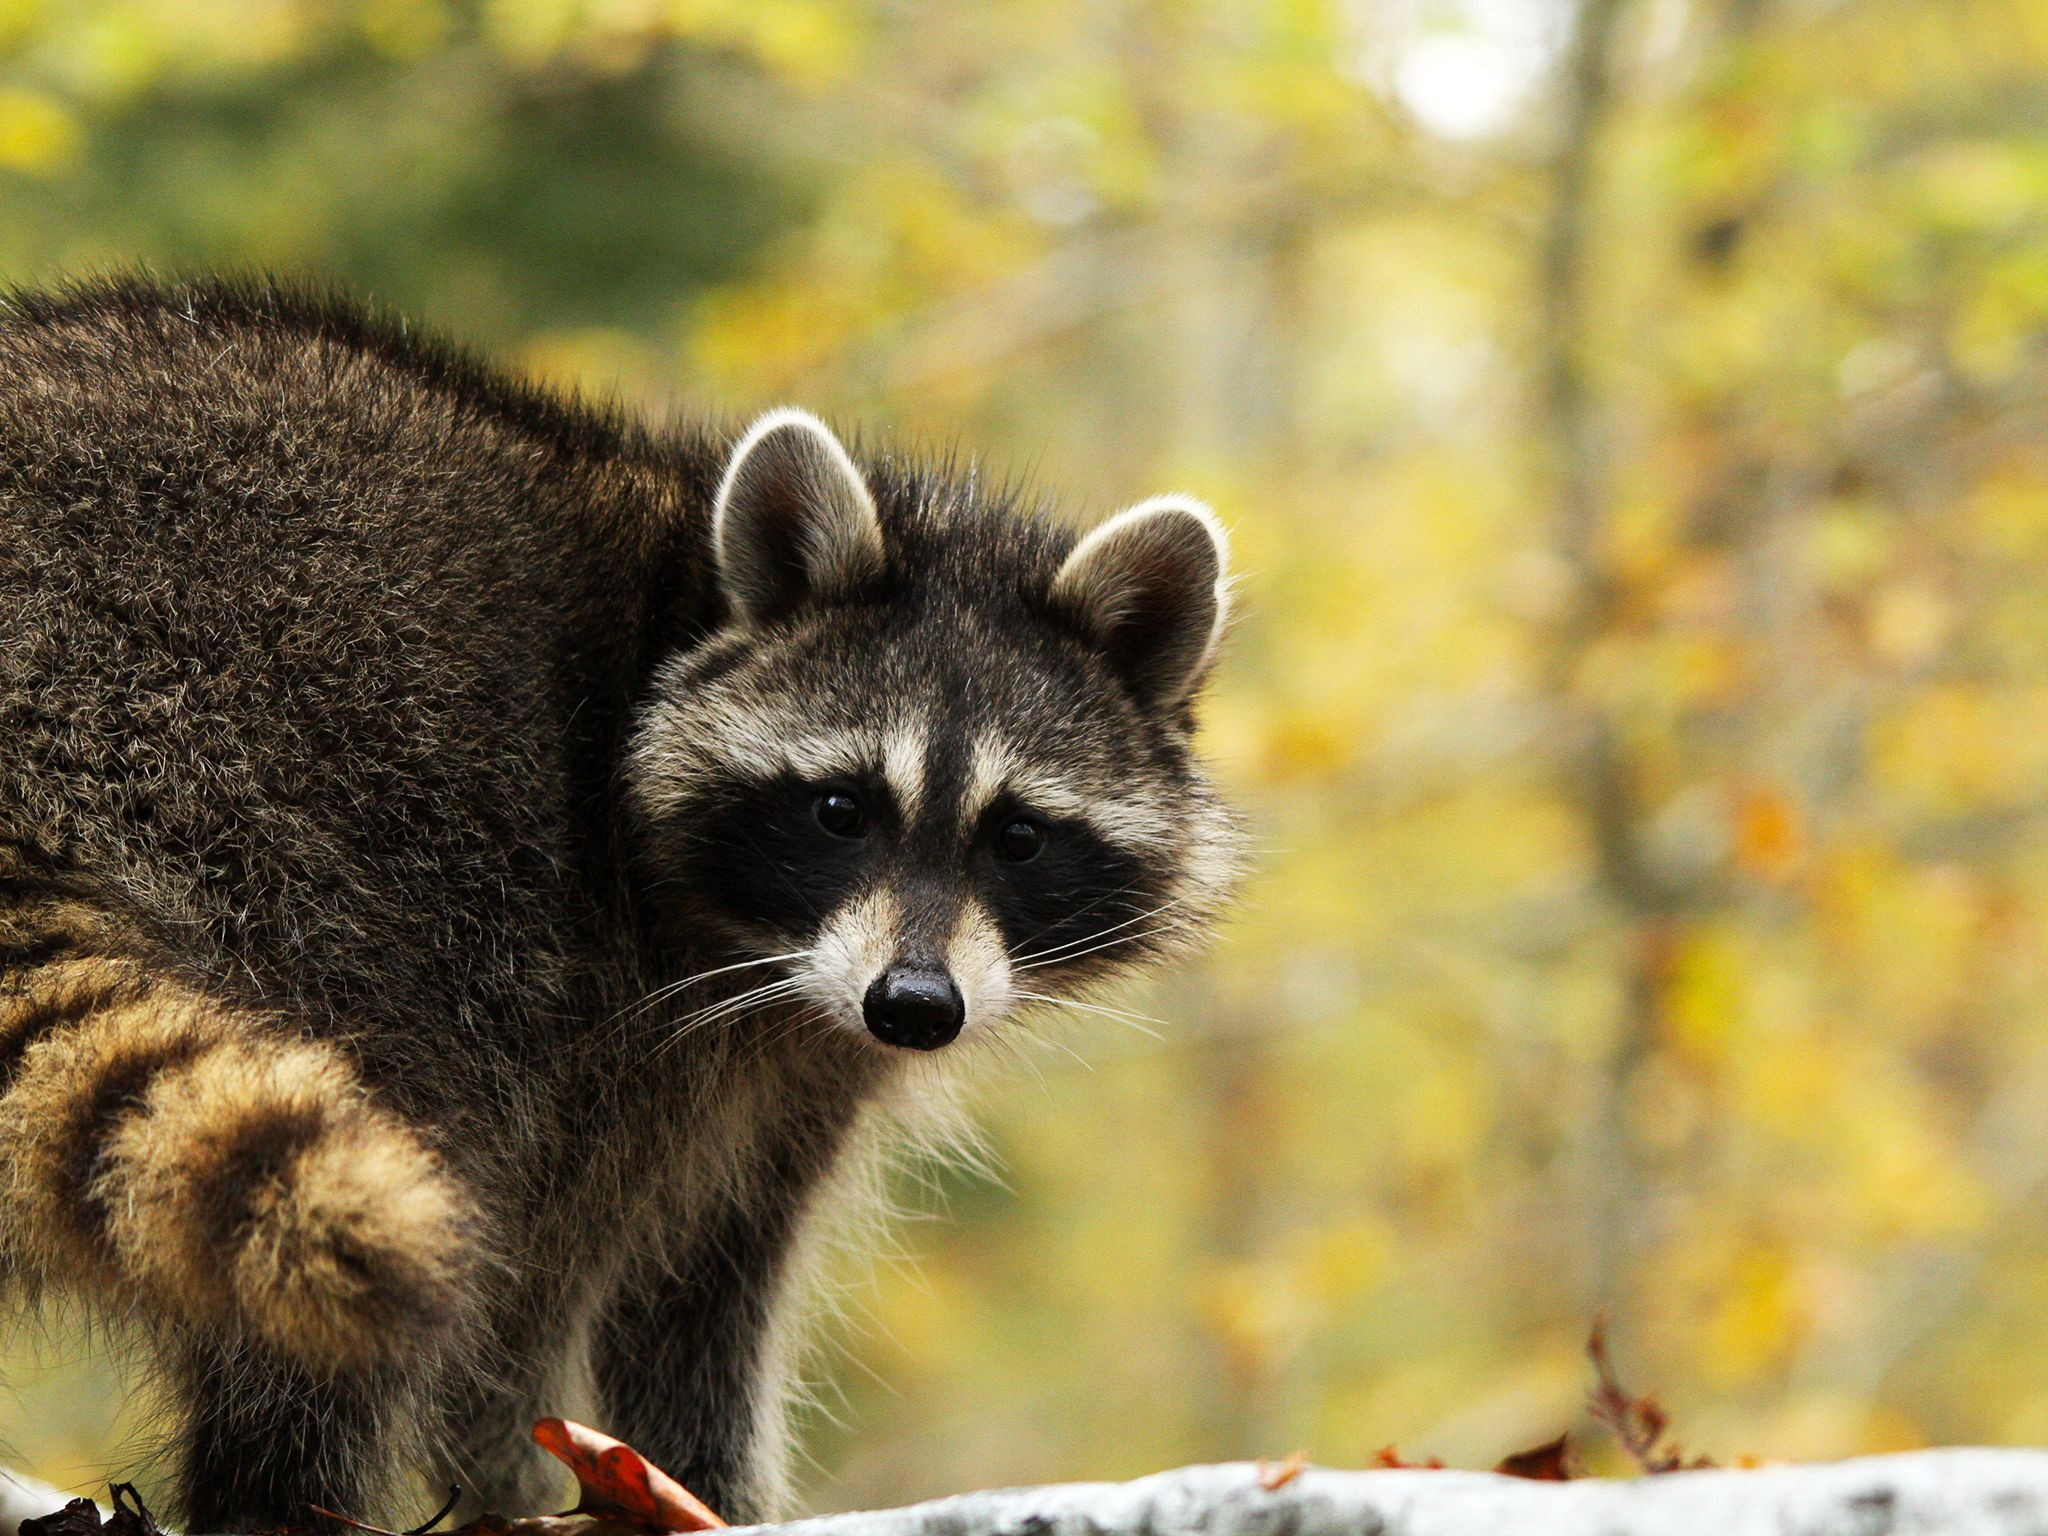 Washington, D.C.: A raccoon in autumn. This image is from Raccoon: Backyard Bandit. [Photo of the day - January 2015]